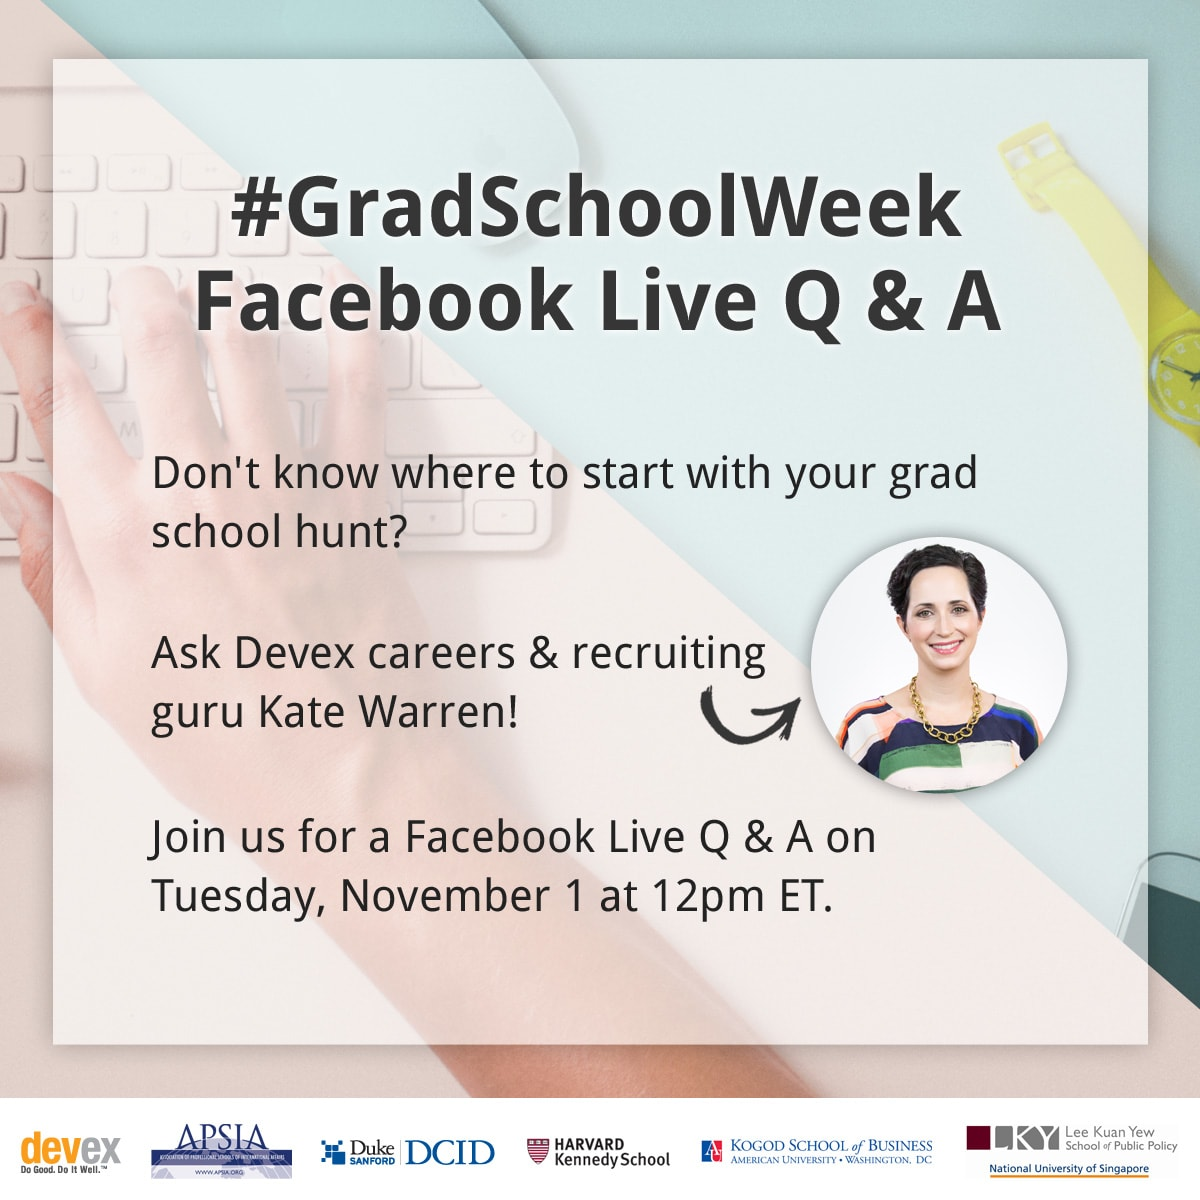 Grad school week graphics fb live  1200x1200 v3